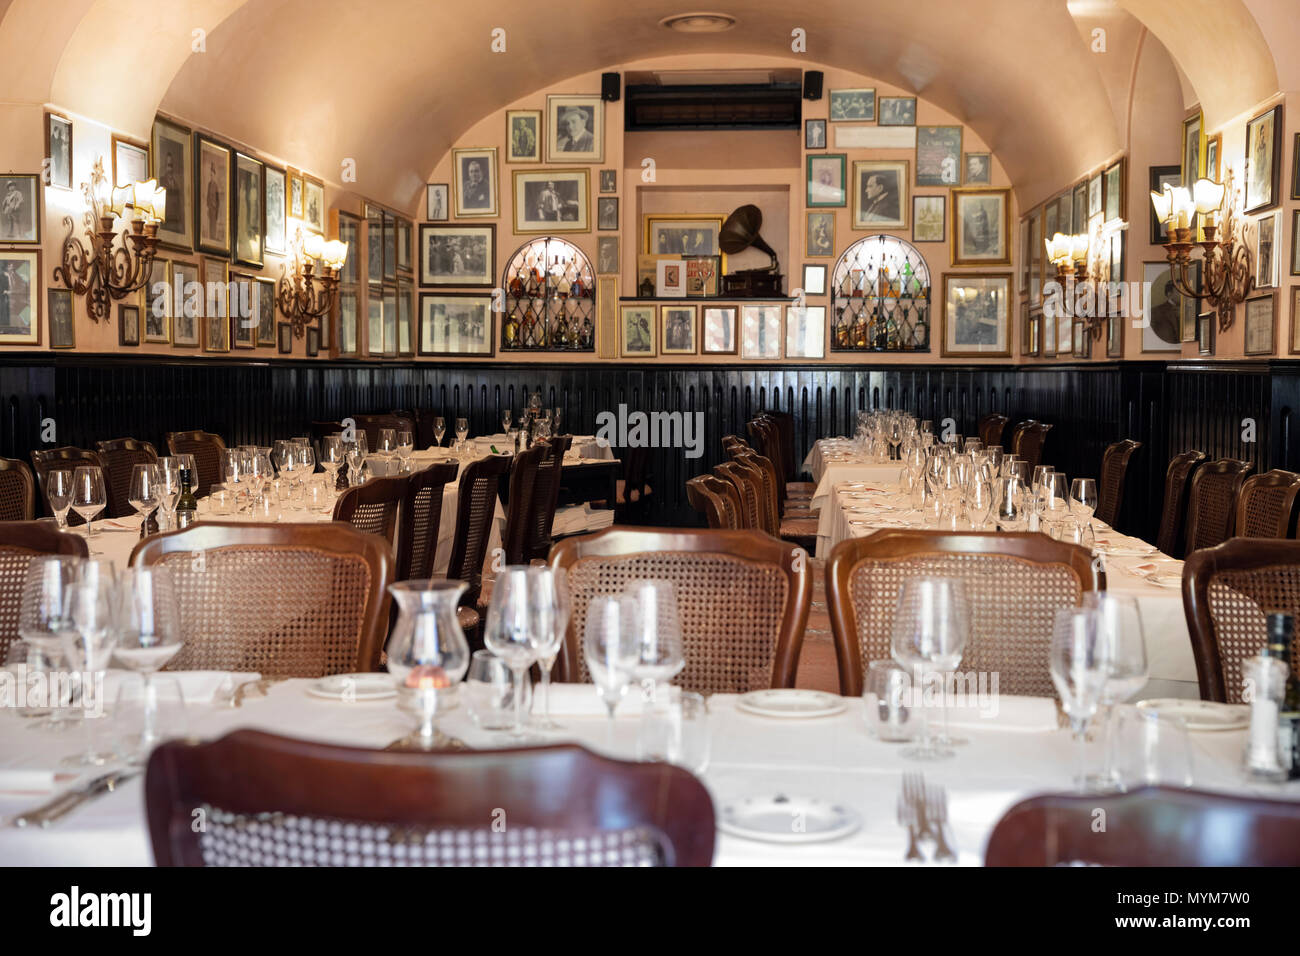 Interior of the Ristorante Museo Caruso with pictures of the famous singer on the walls, Via Sant' Antonino, Sorrento, Campania, Italy, Europe - Stock Image